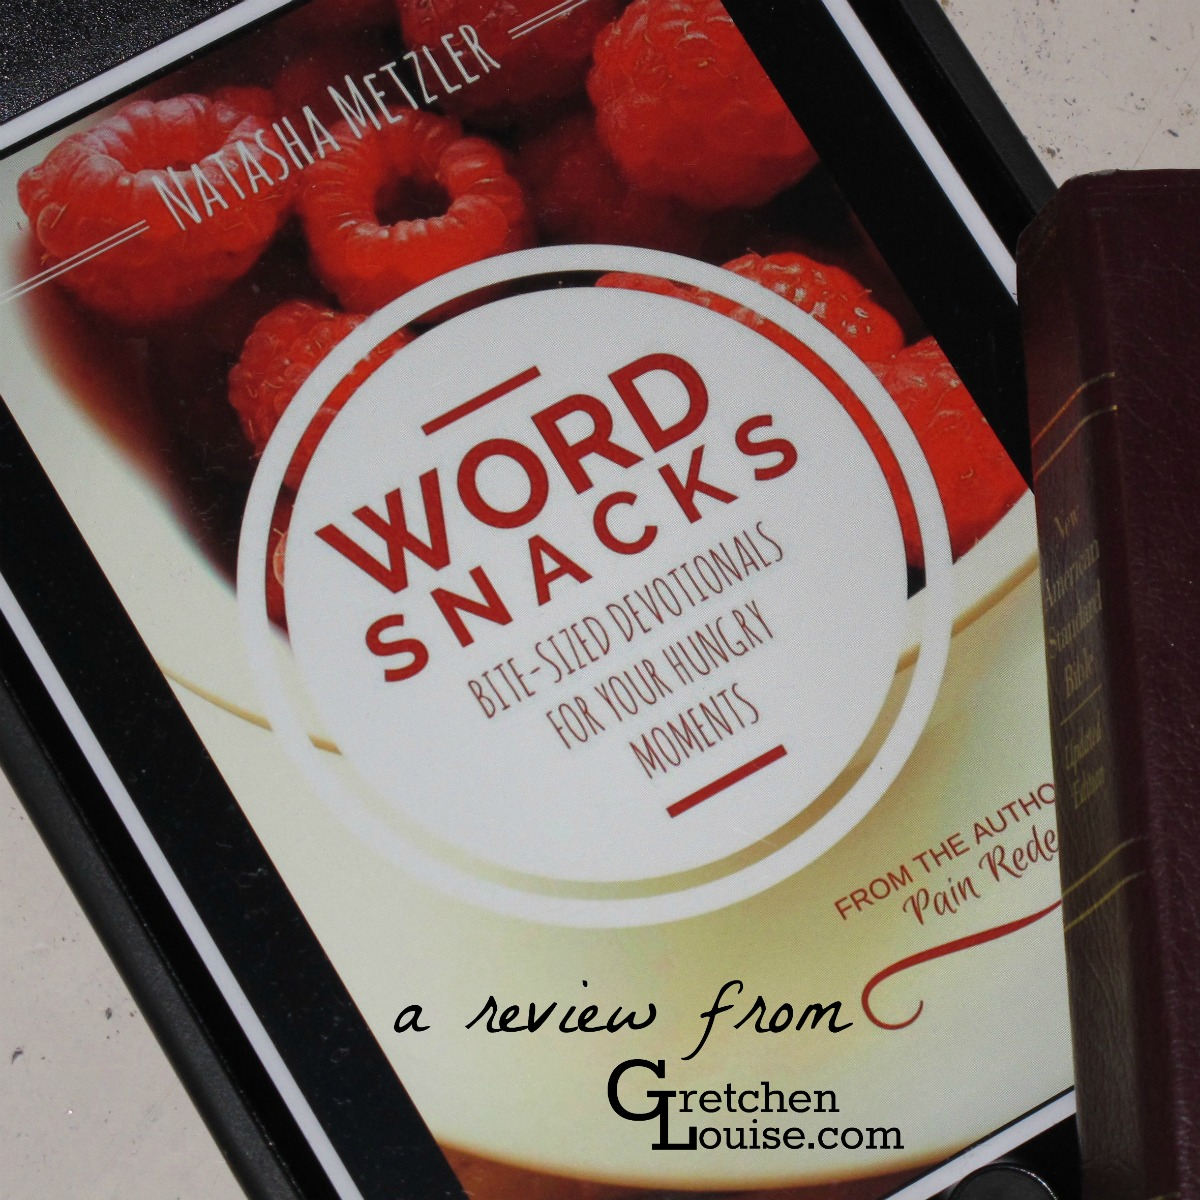 WordSnacks: a review of the new devotional by Natasha Metzler